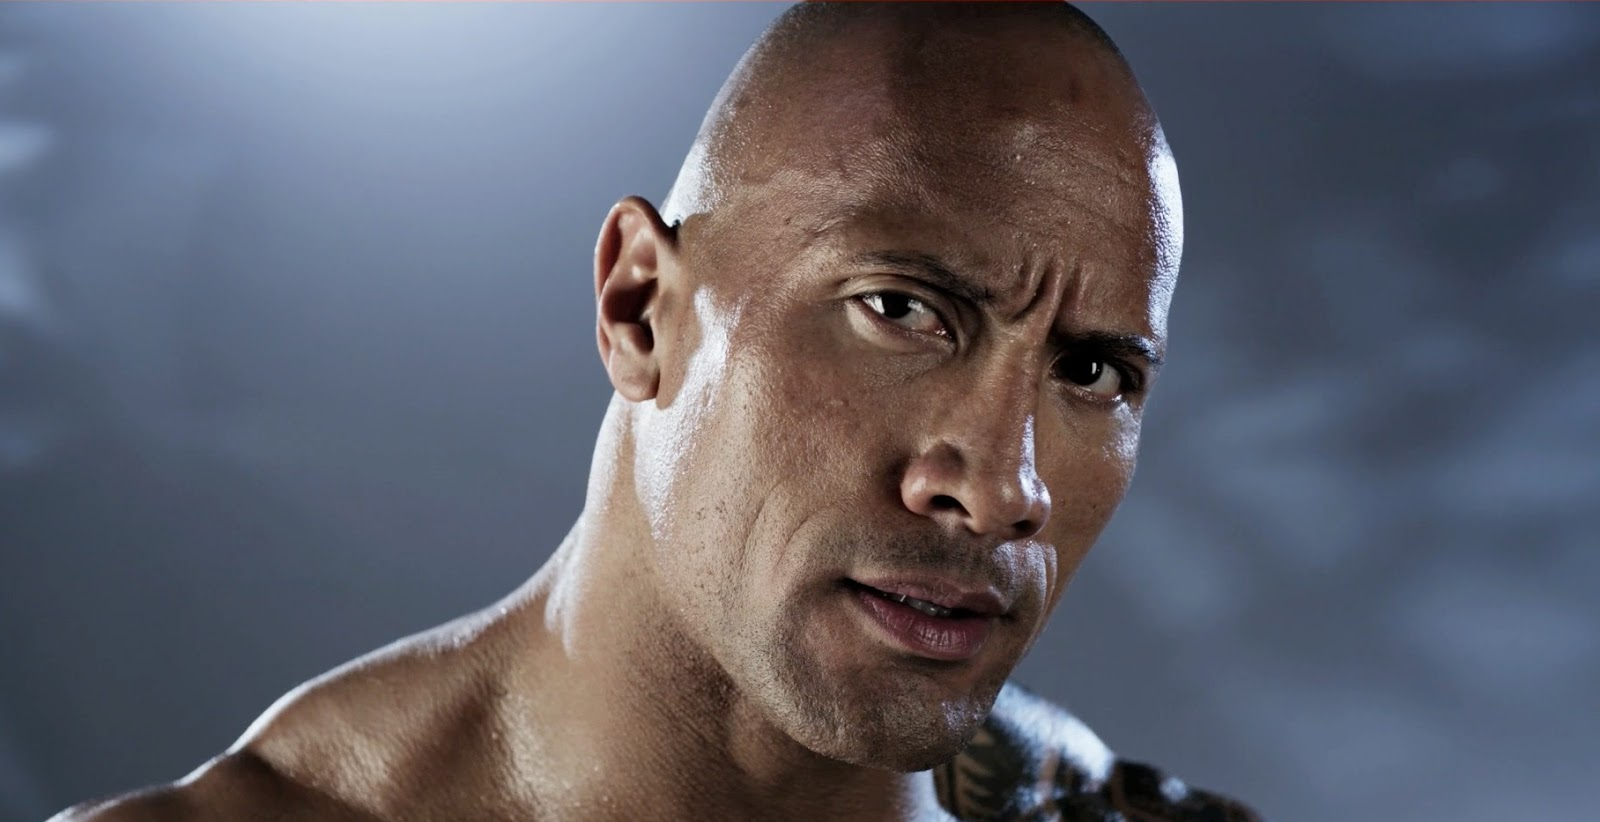 Video games: WWE 2K14 cover art featuring The Rock - PS3 X360